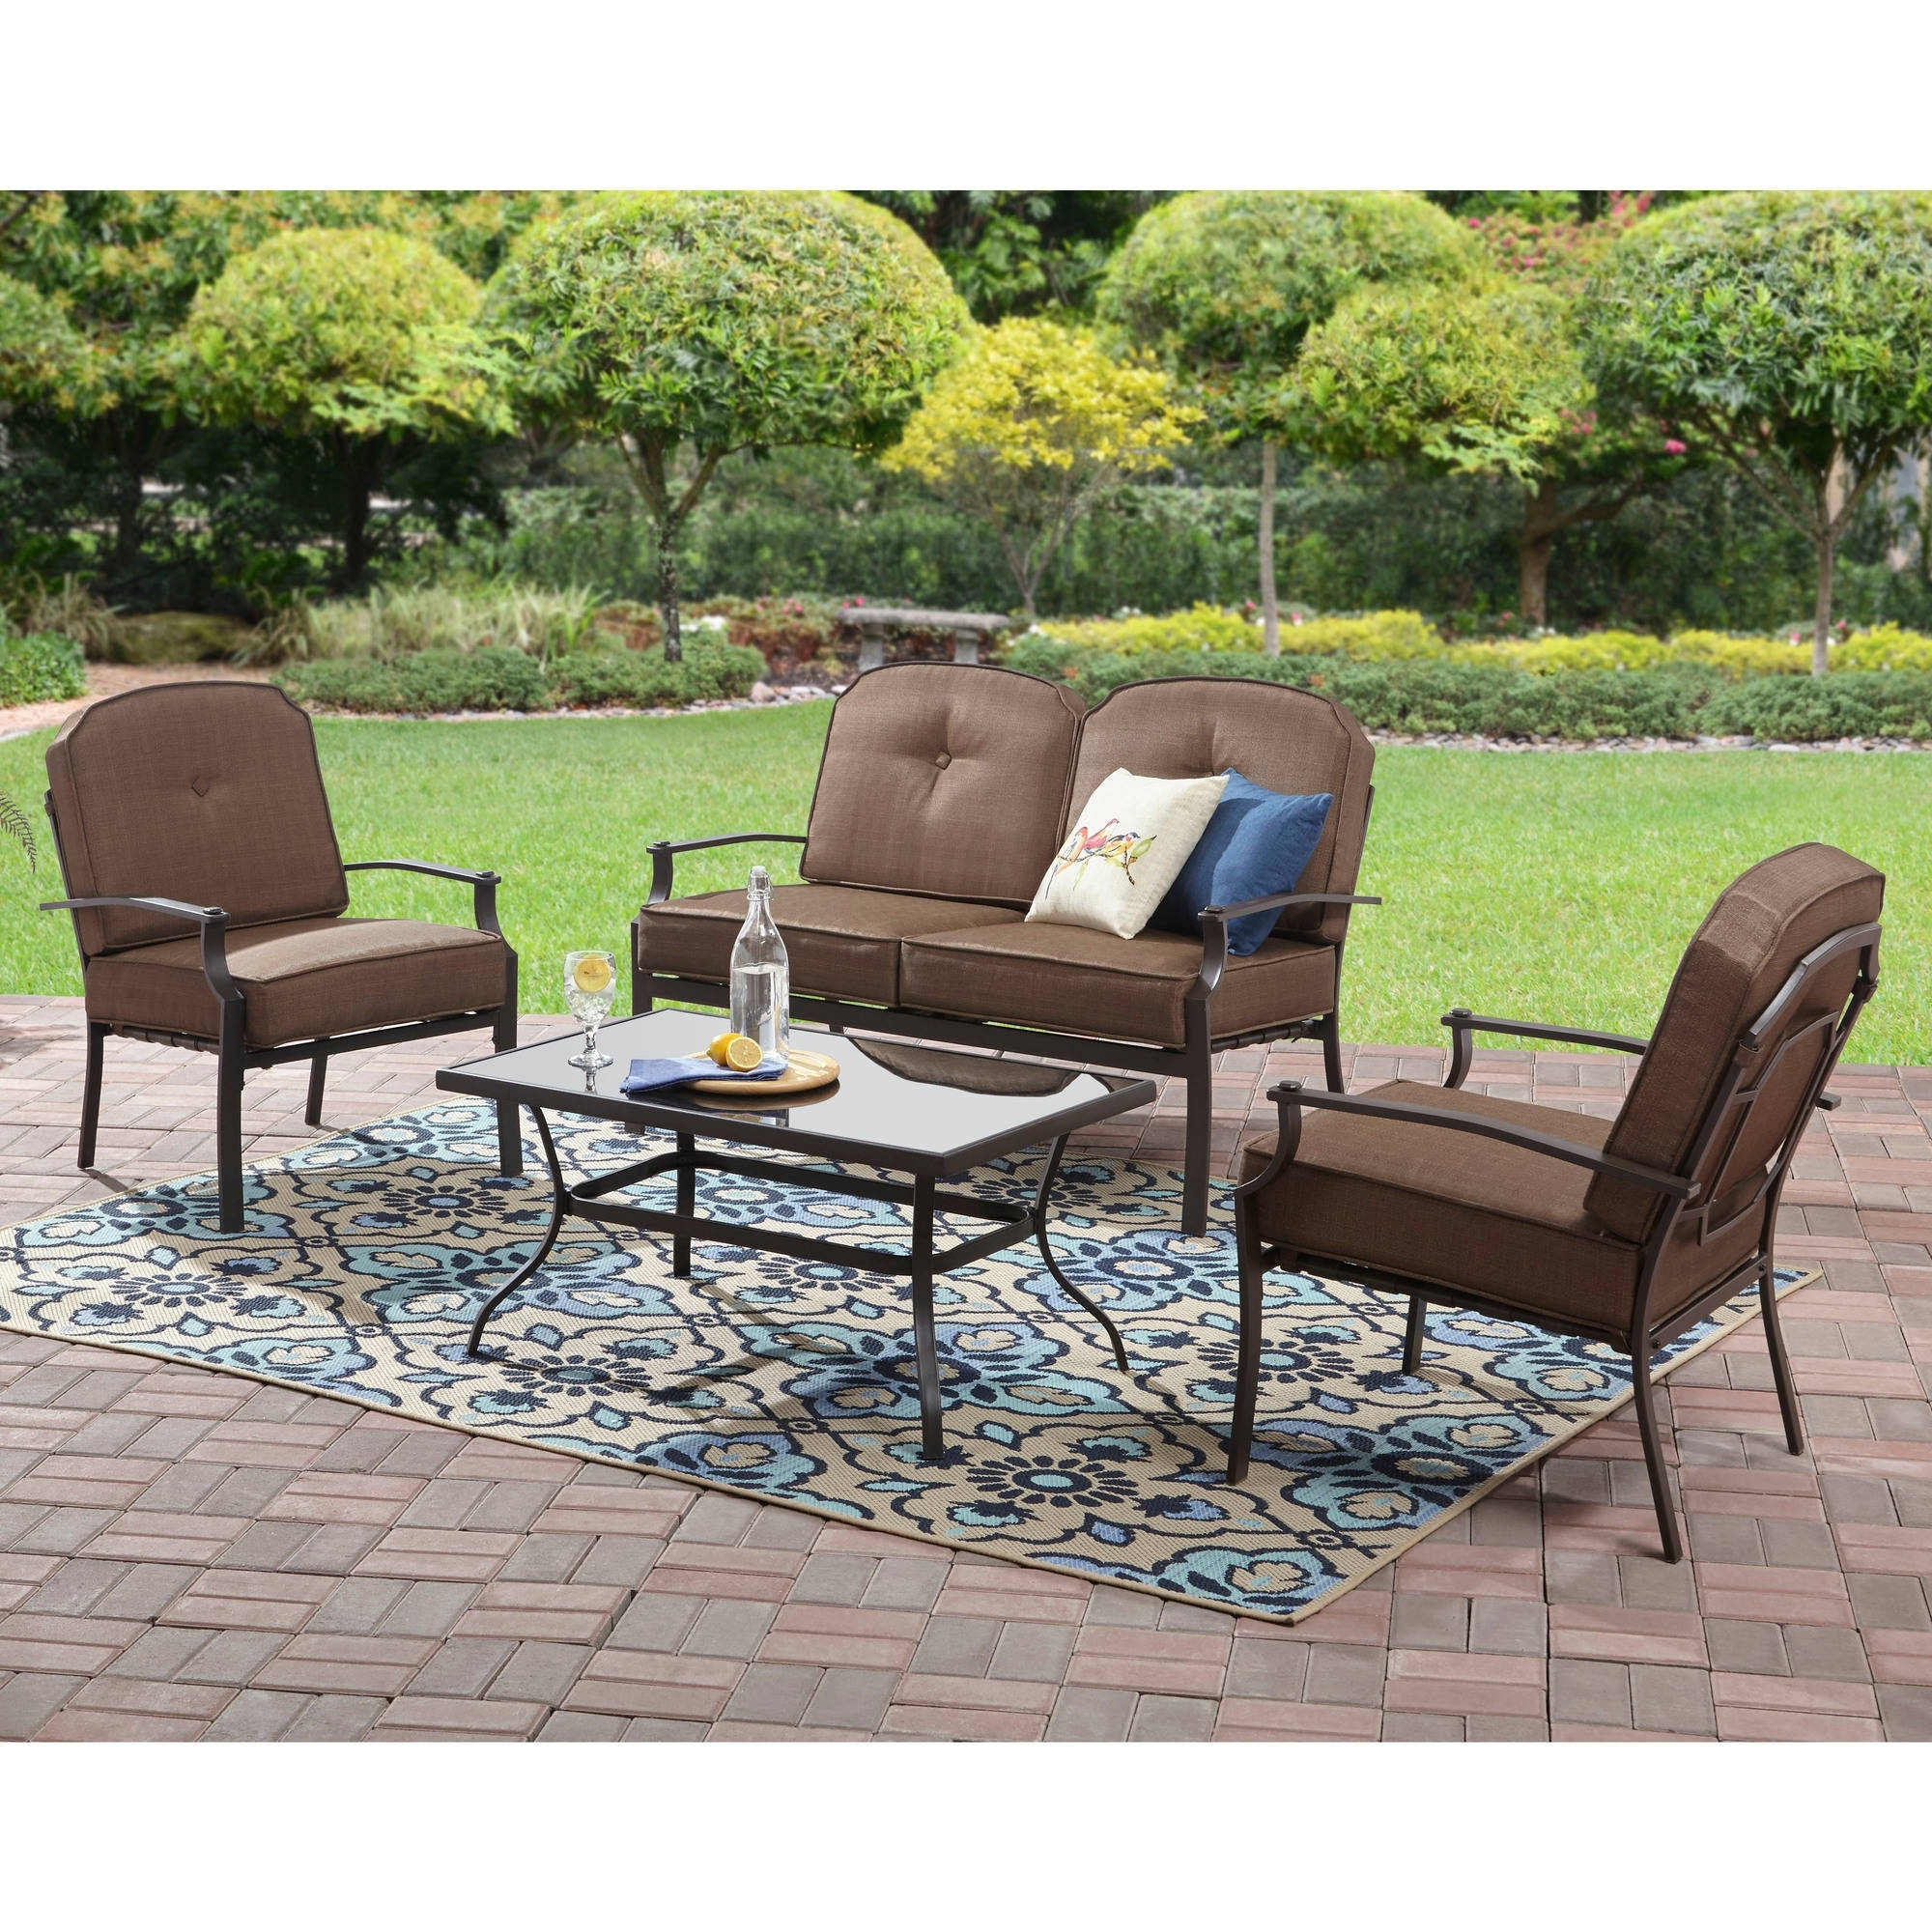 Recent Steel Patio Conversation Sets Regarding Mainstays Spring Creek 5 Piece Patio Dining Set, Seats 4 – Walmart (View 10 of 20)